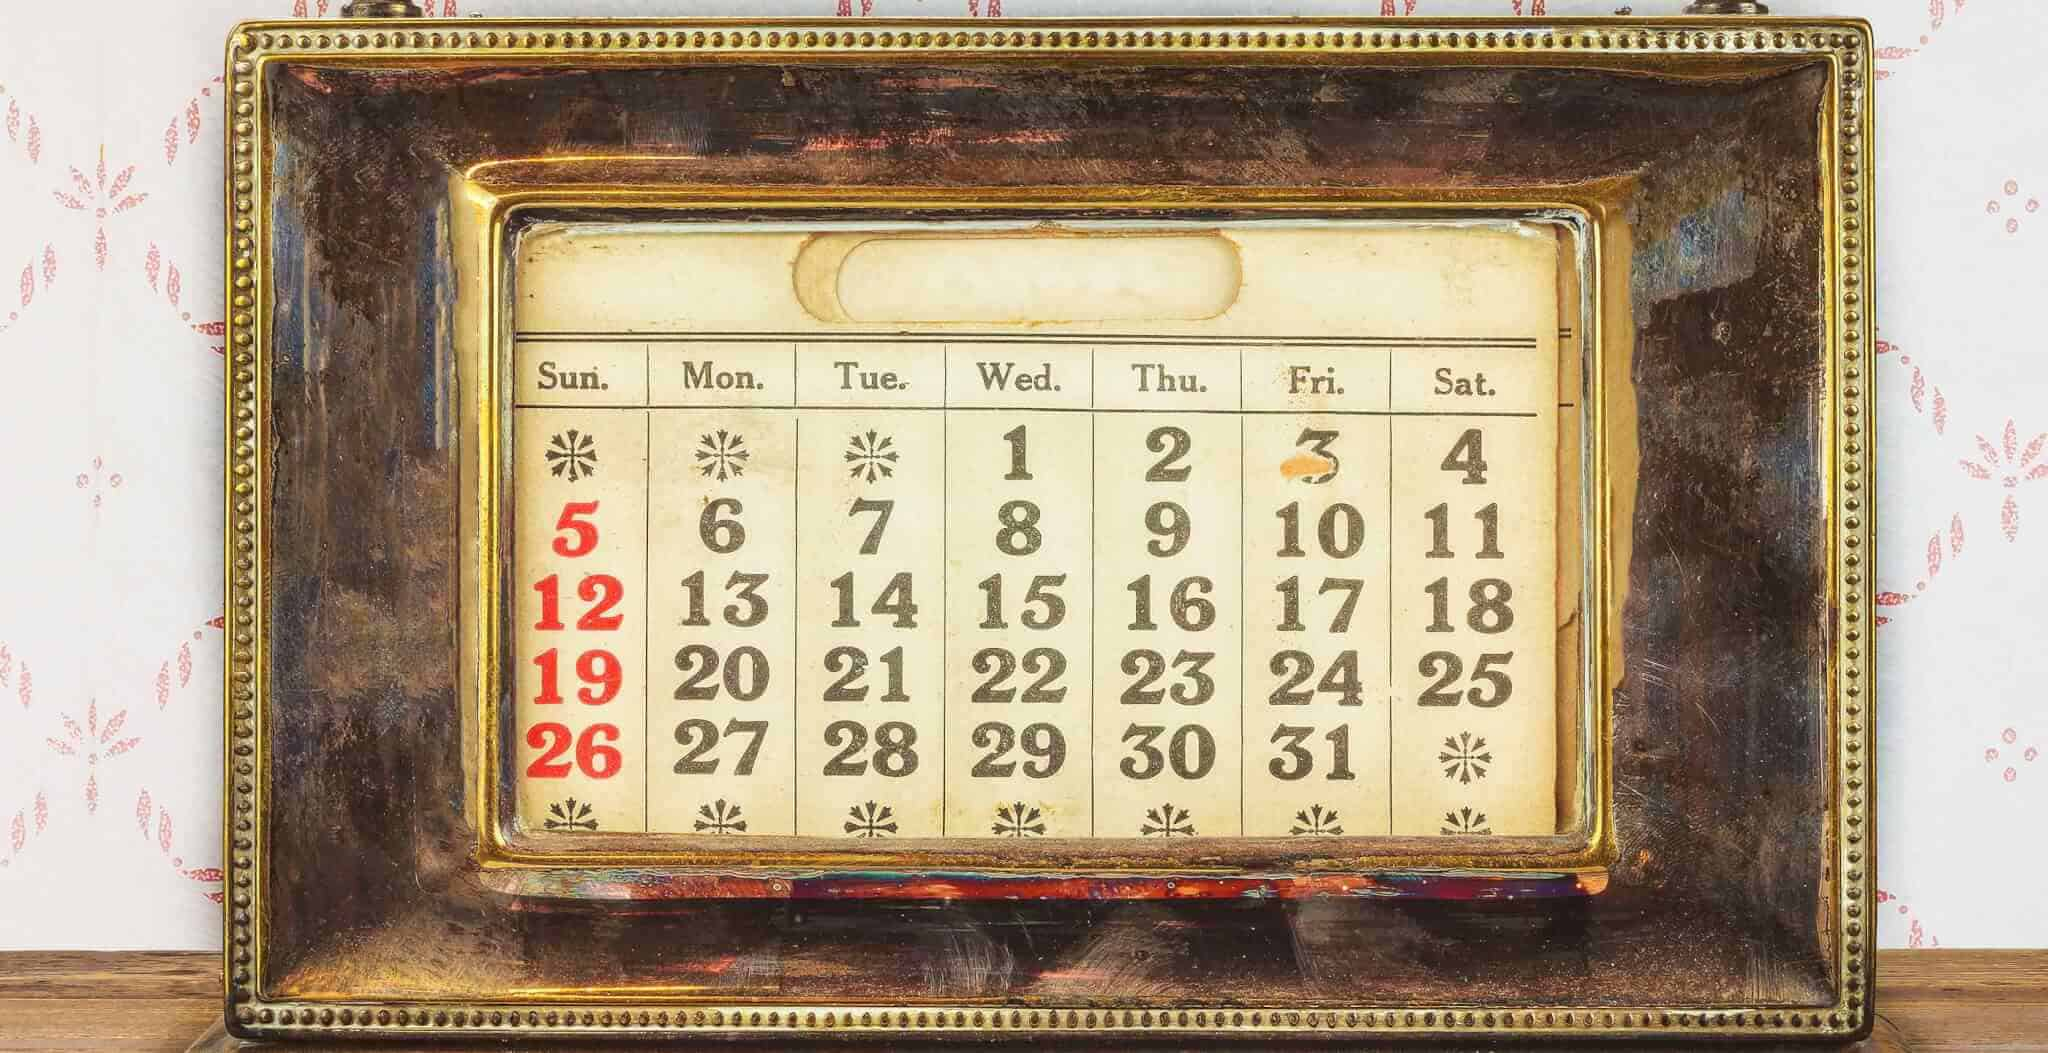 give-us-our-eleven-days-calendar-riots